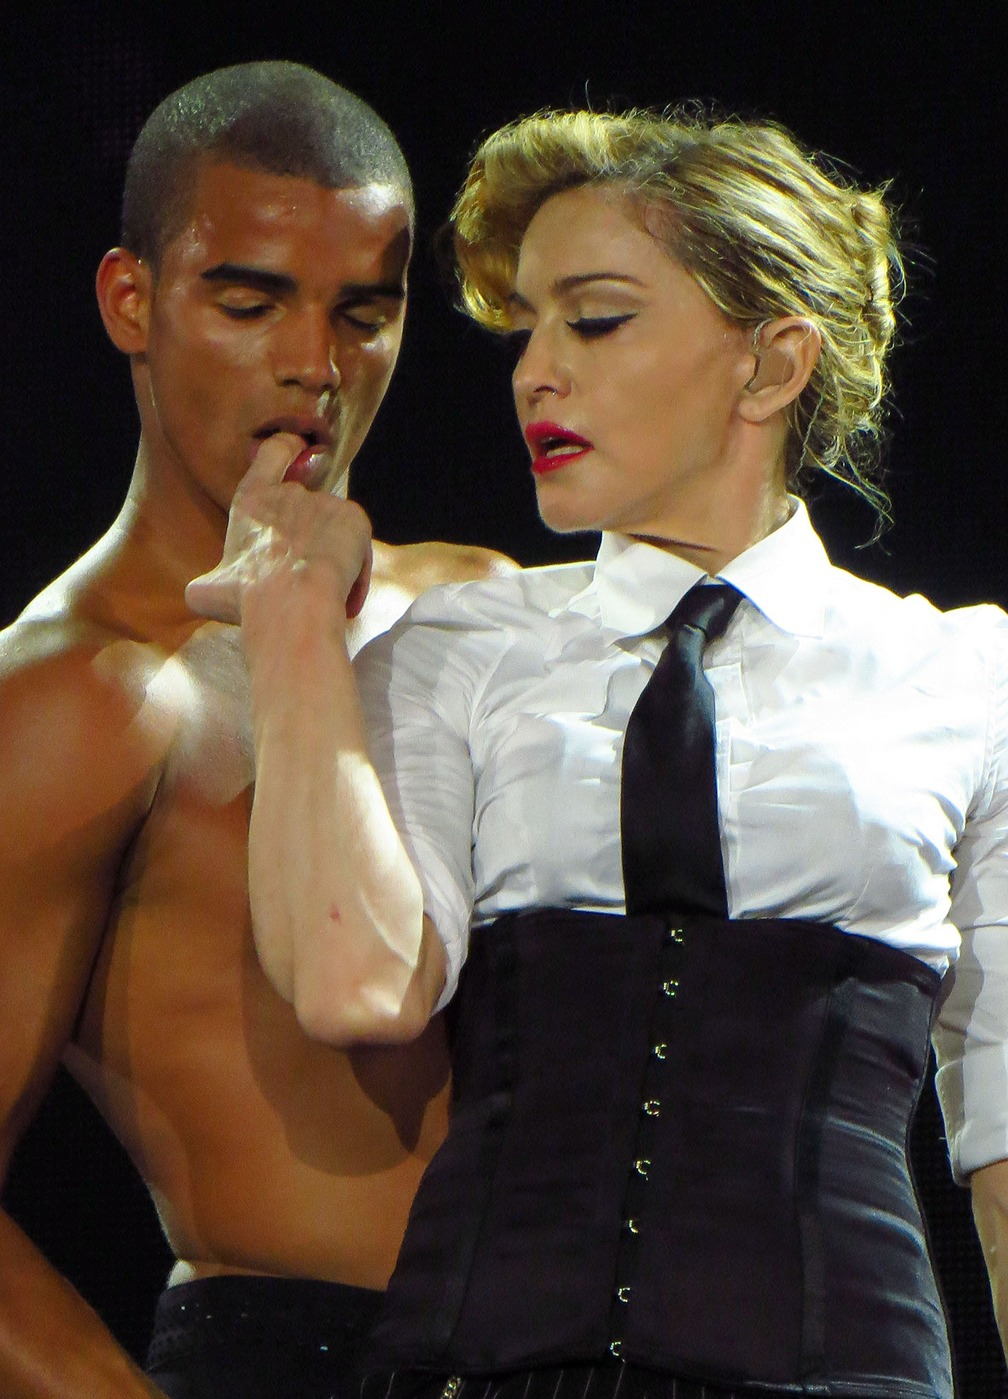 Queen of pop Madonna and her 25 year old boyfriend Brahim Zaibat seen sharing a passionate French kiss while on stage at the Telecom Stadium in Turkey